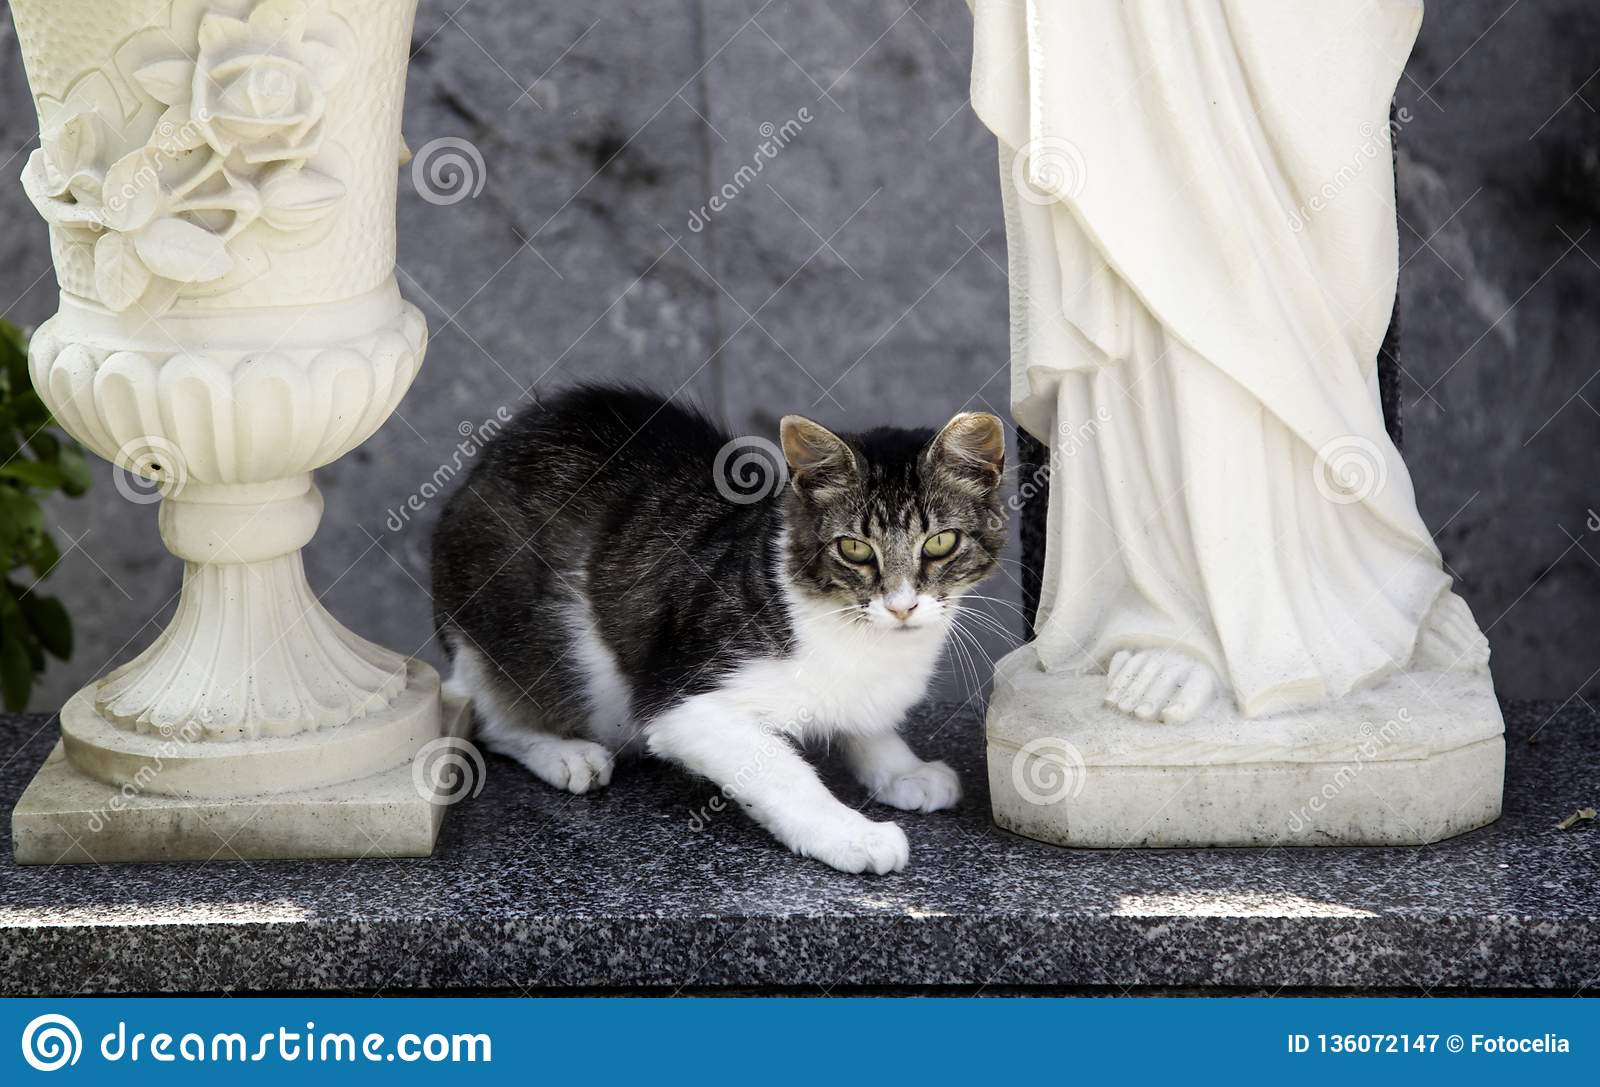 Cats abandoned street stock image  Image of nature, alone - 136072147